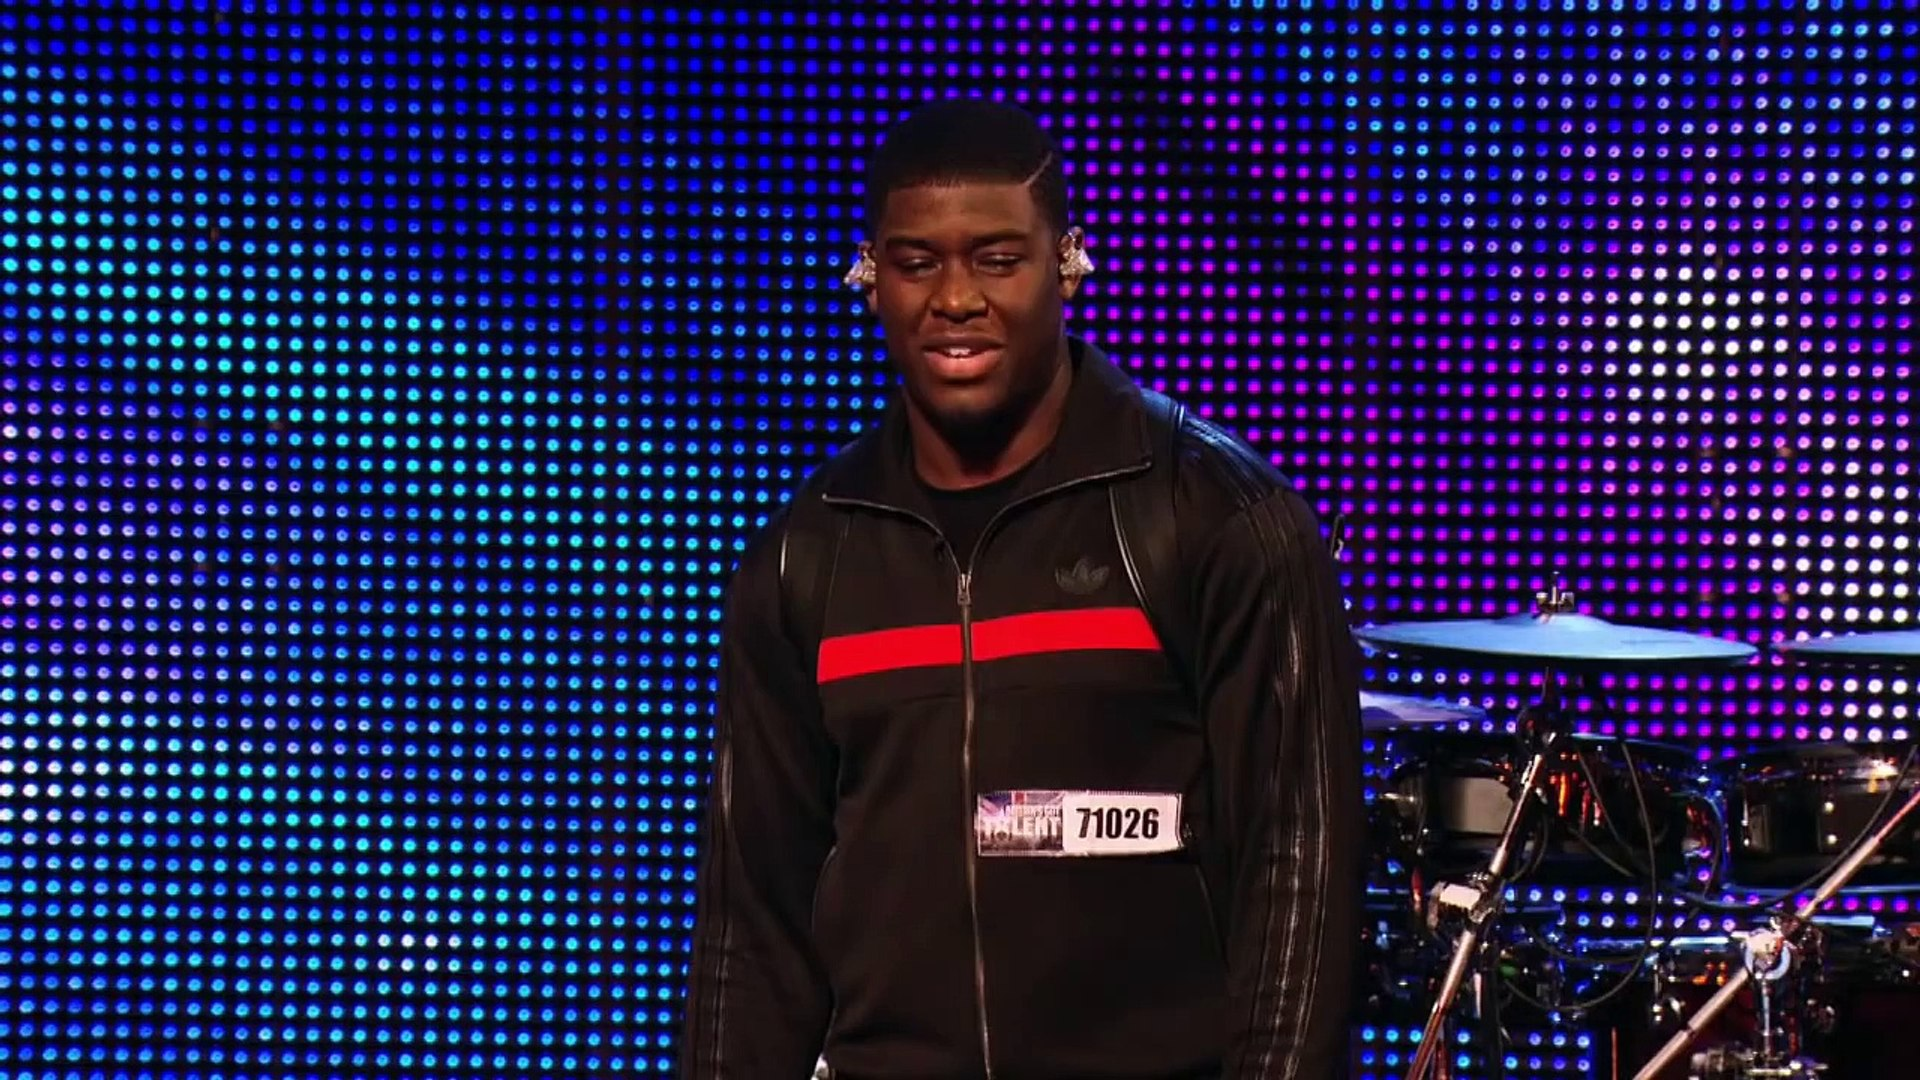 MckNasty bangs the drum! A peek at whats coming up | Britain's Got Talent 2013